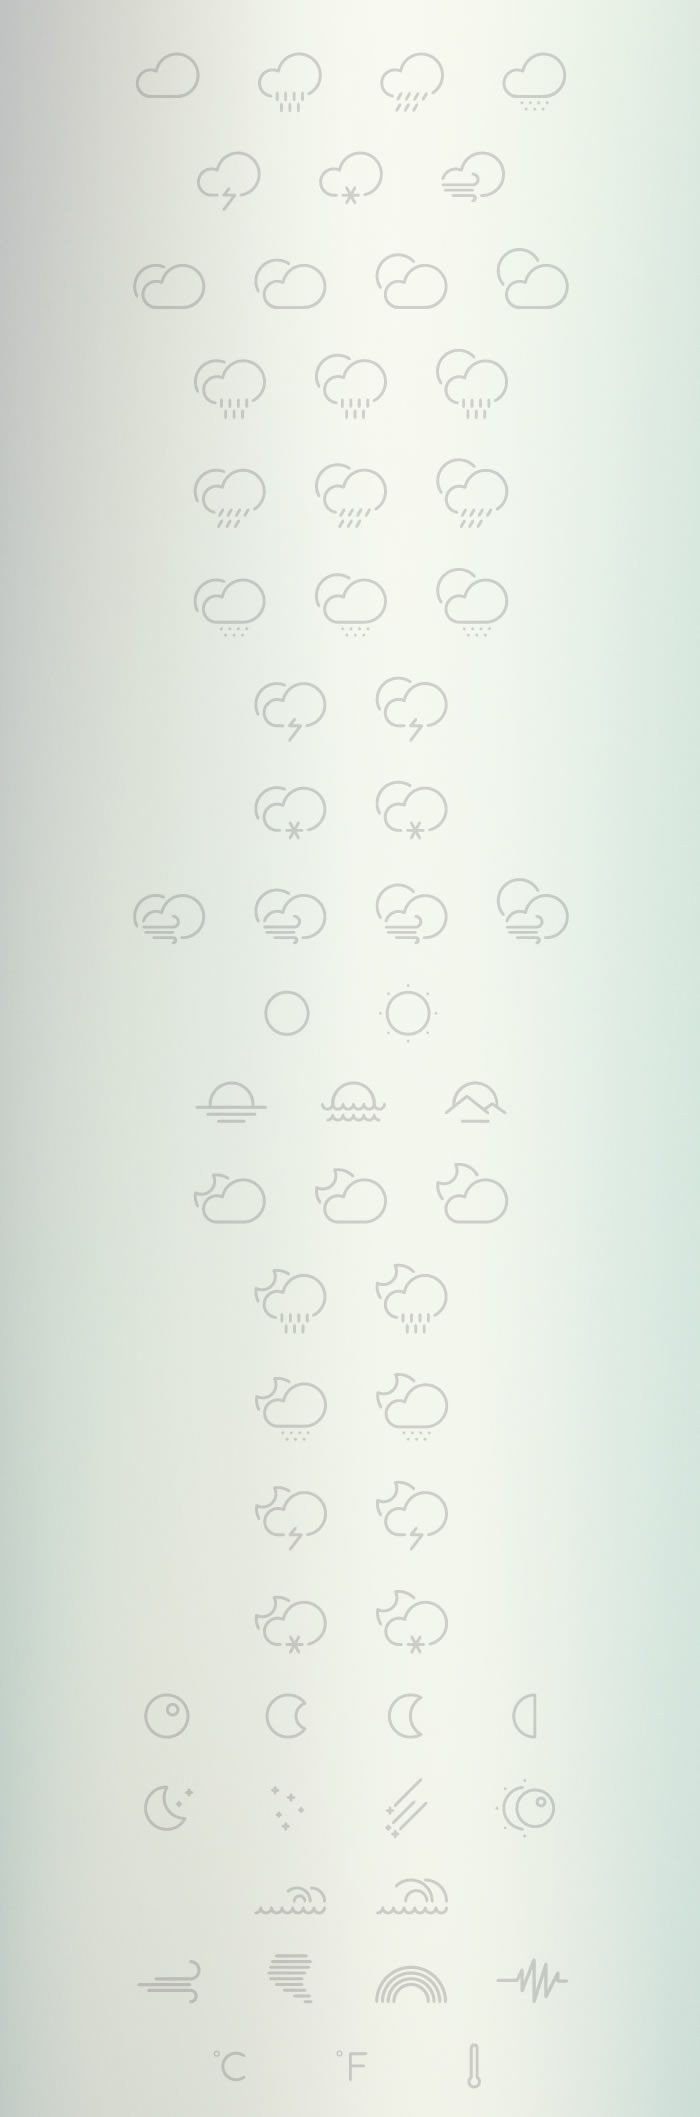 Outlined Weather free Icons Collection Preview